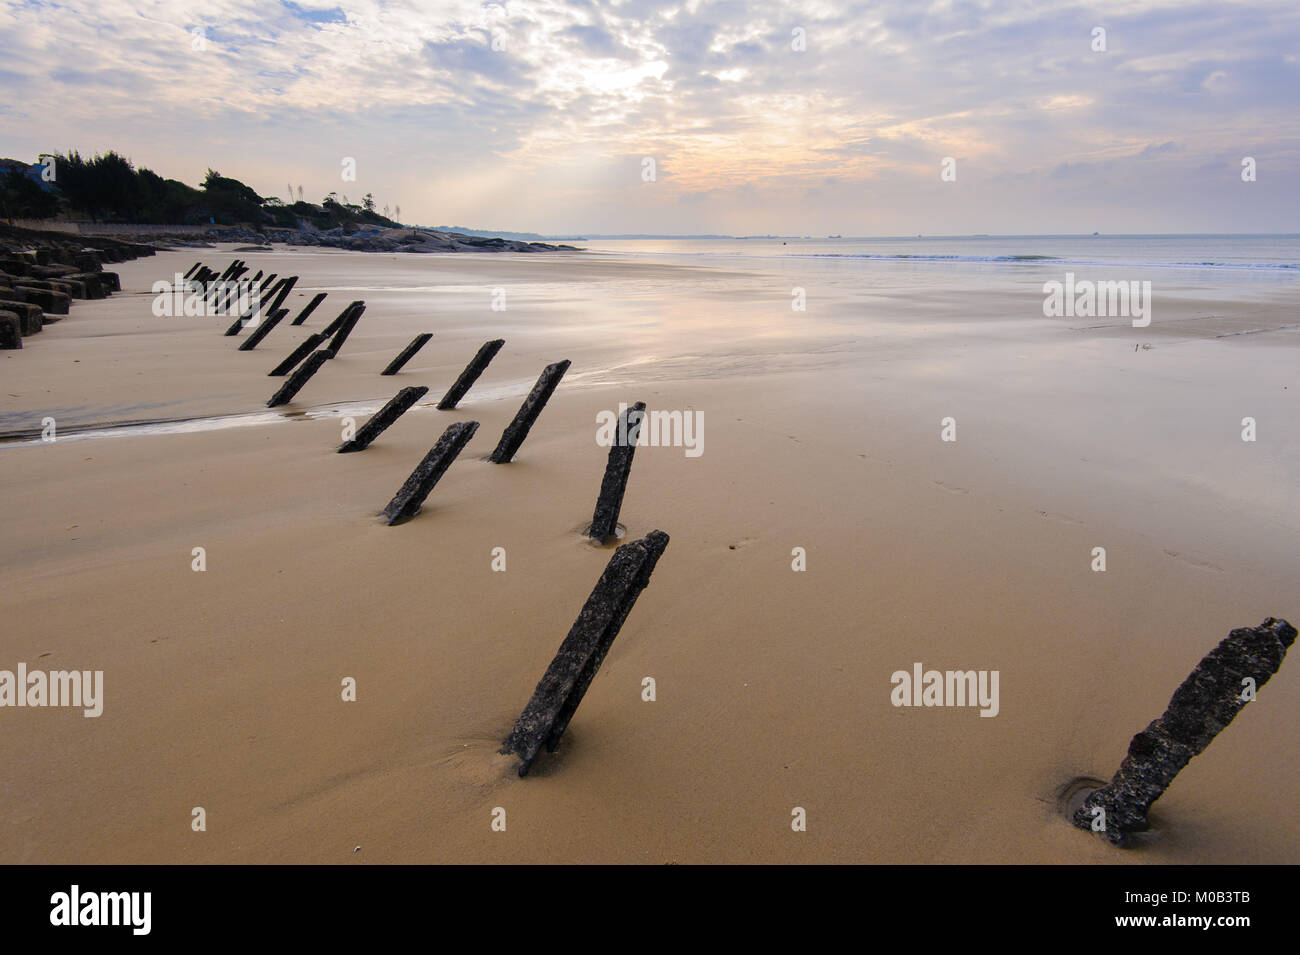 Tetrapod structure on the beach in Kinmen - Stock Image